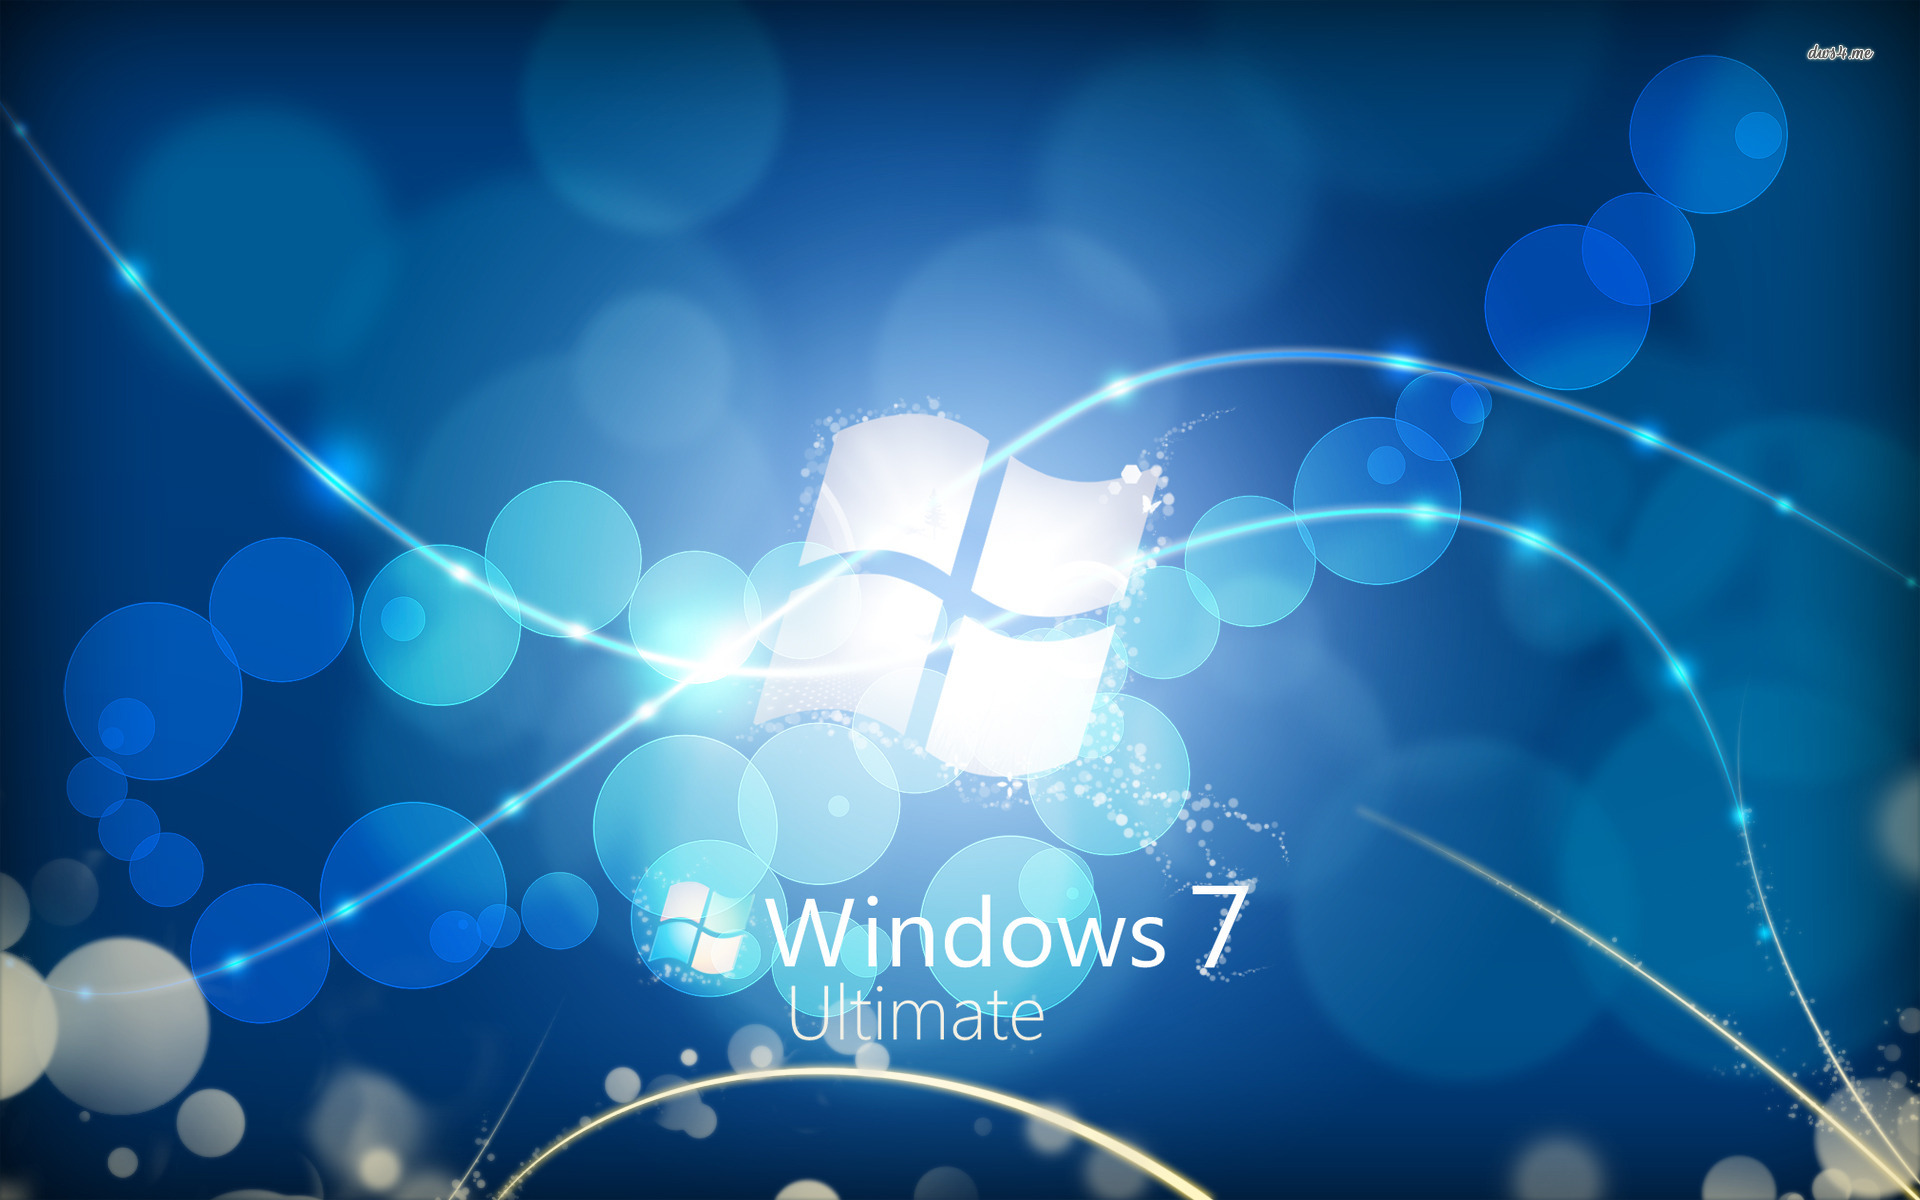 1920x1080 windows 7 wallpaper: Windows 7 Ultimate Wallpaper 1920x1080